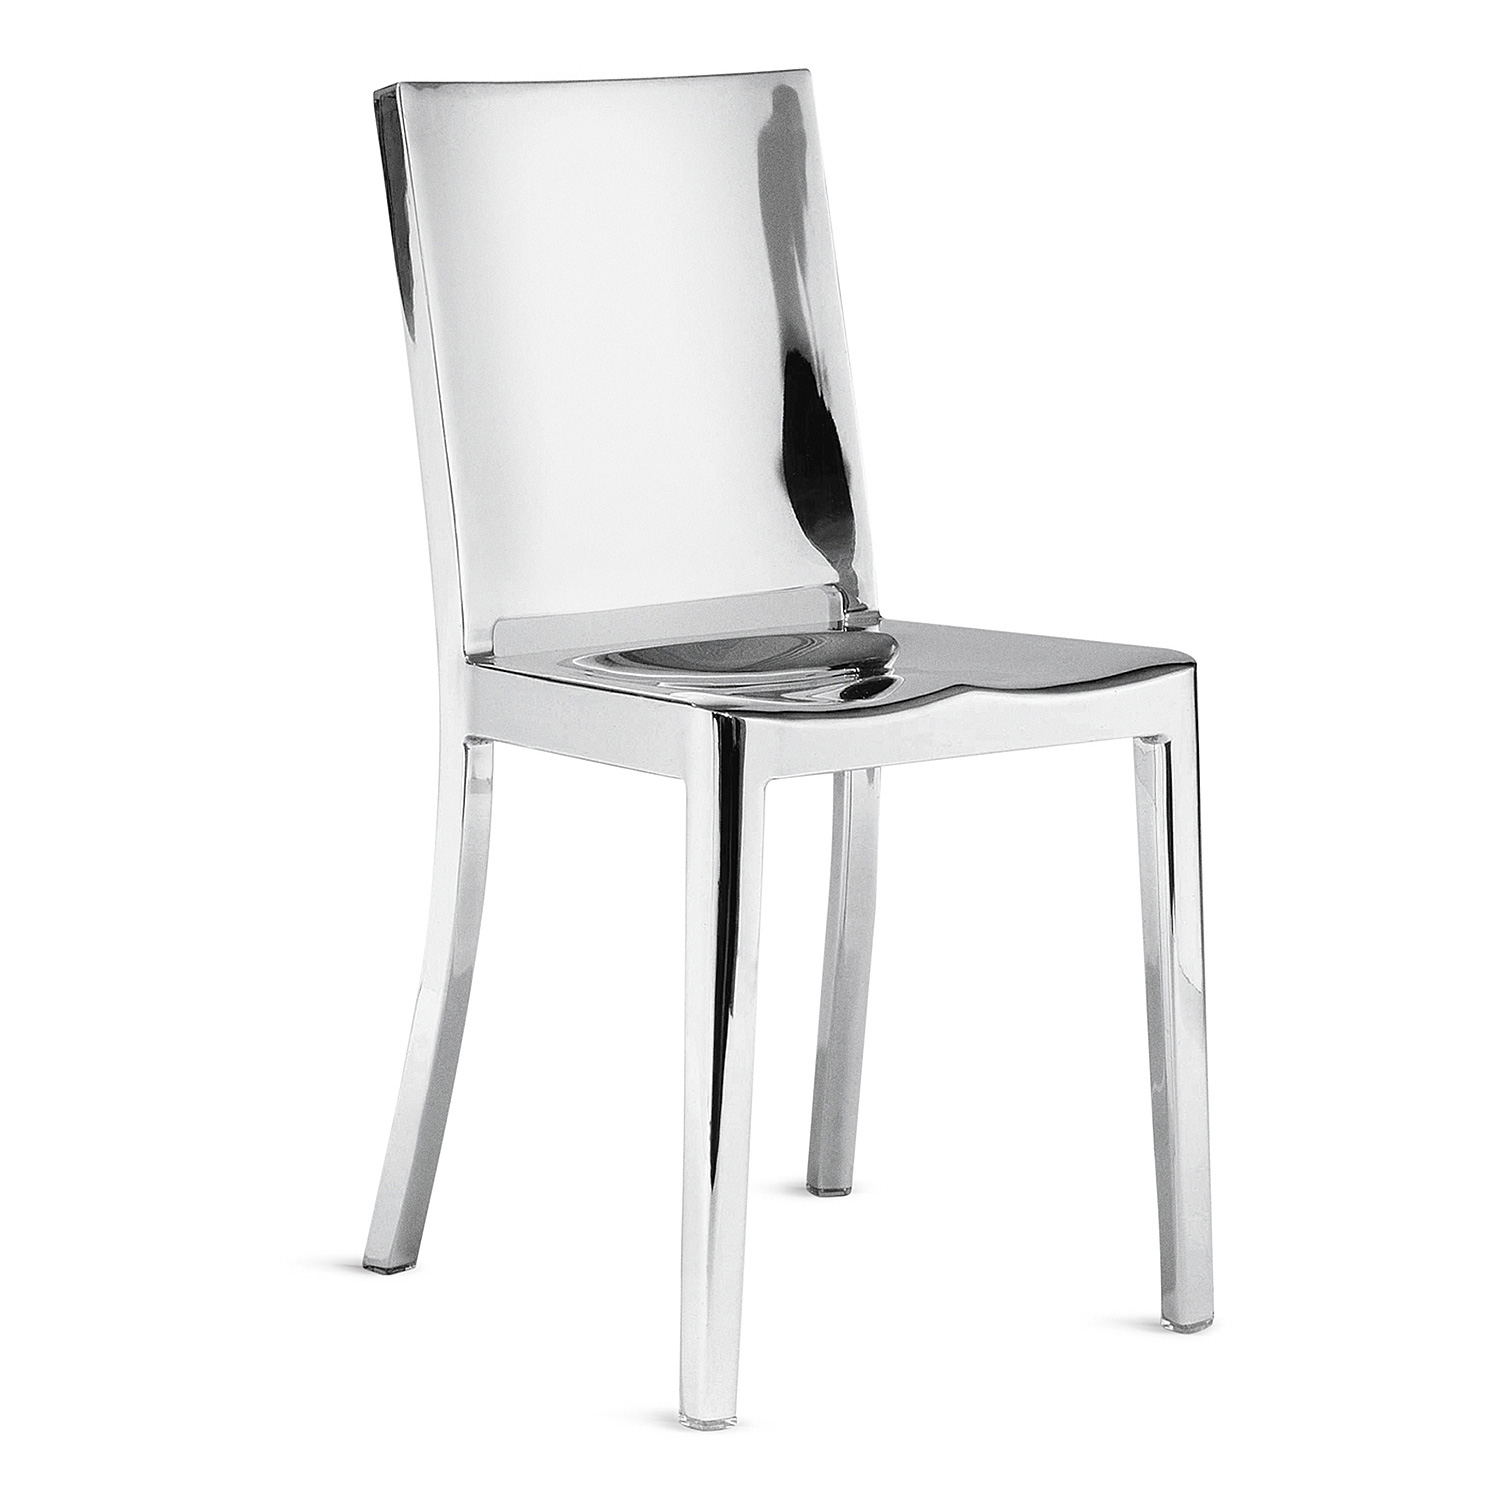 Philipp Stark Chair Philippe Starck